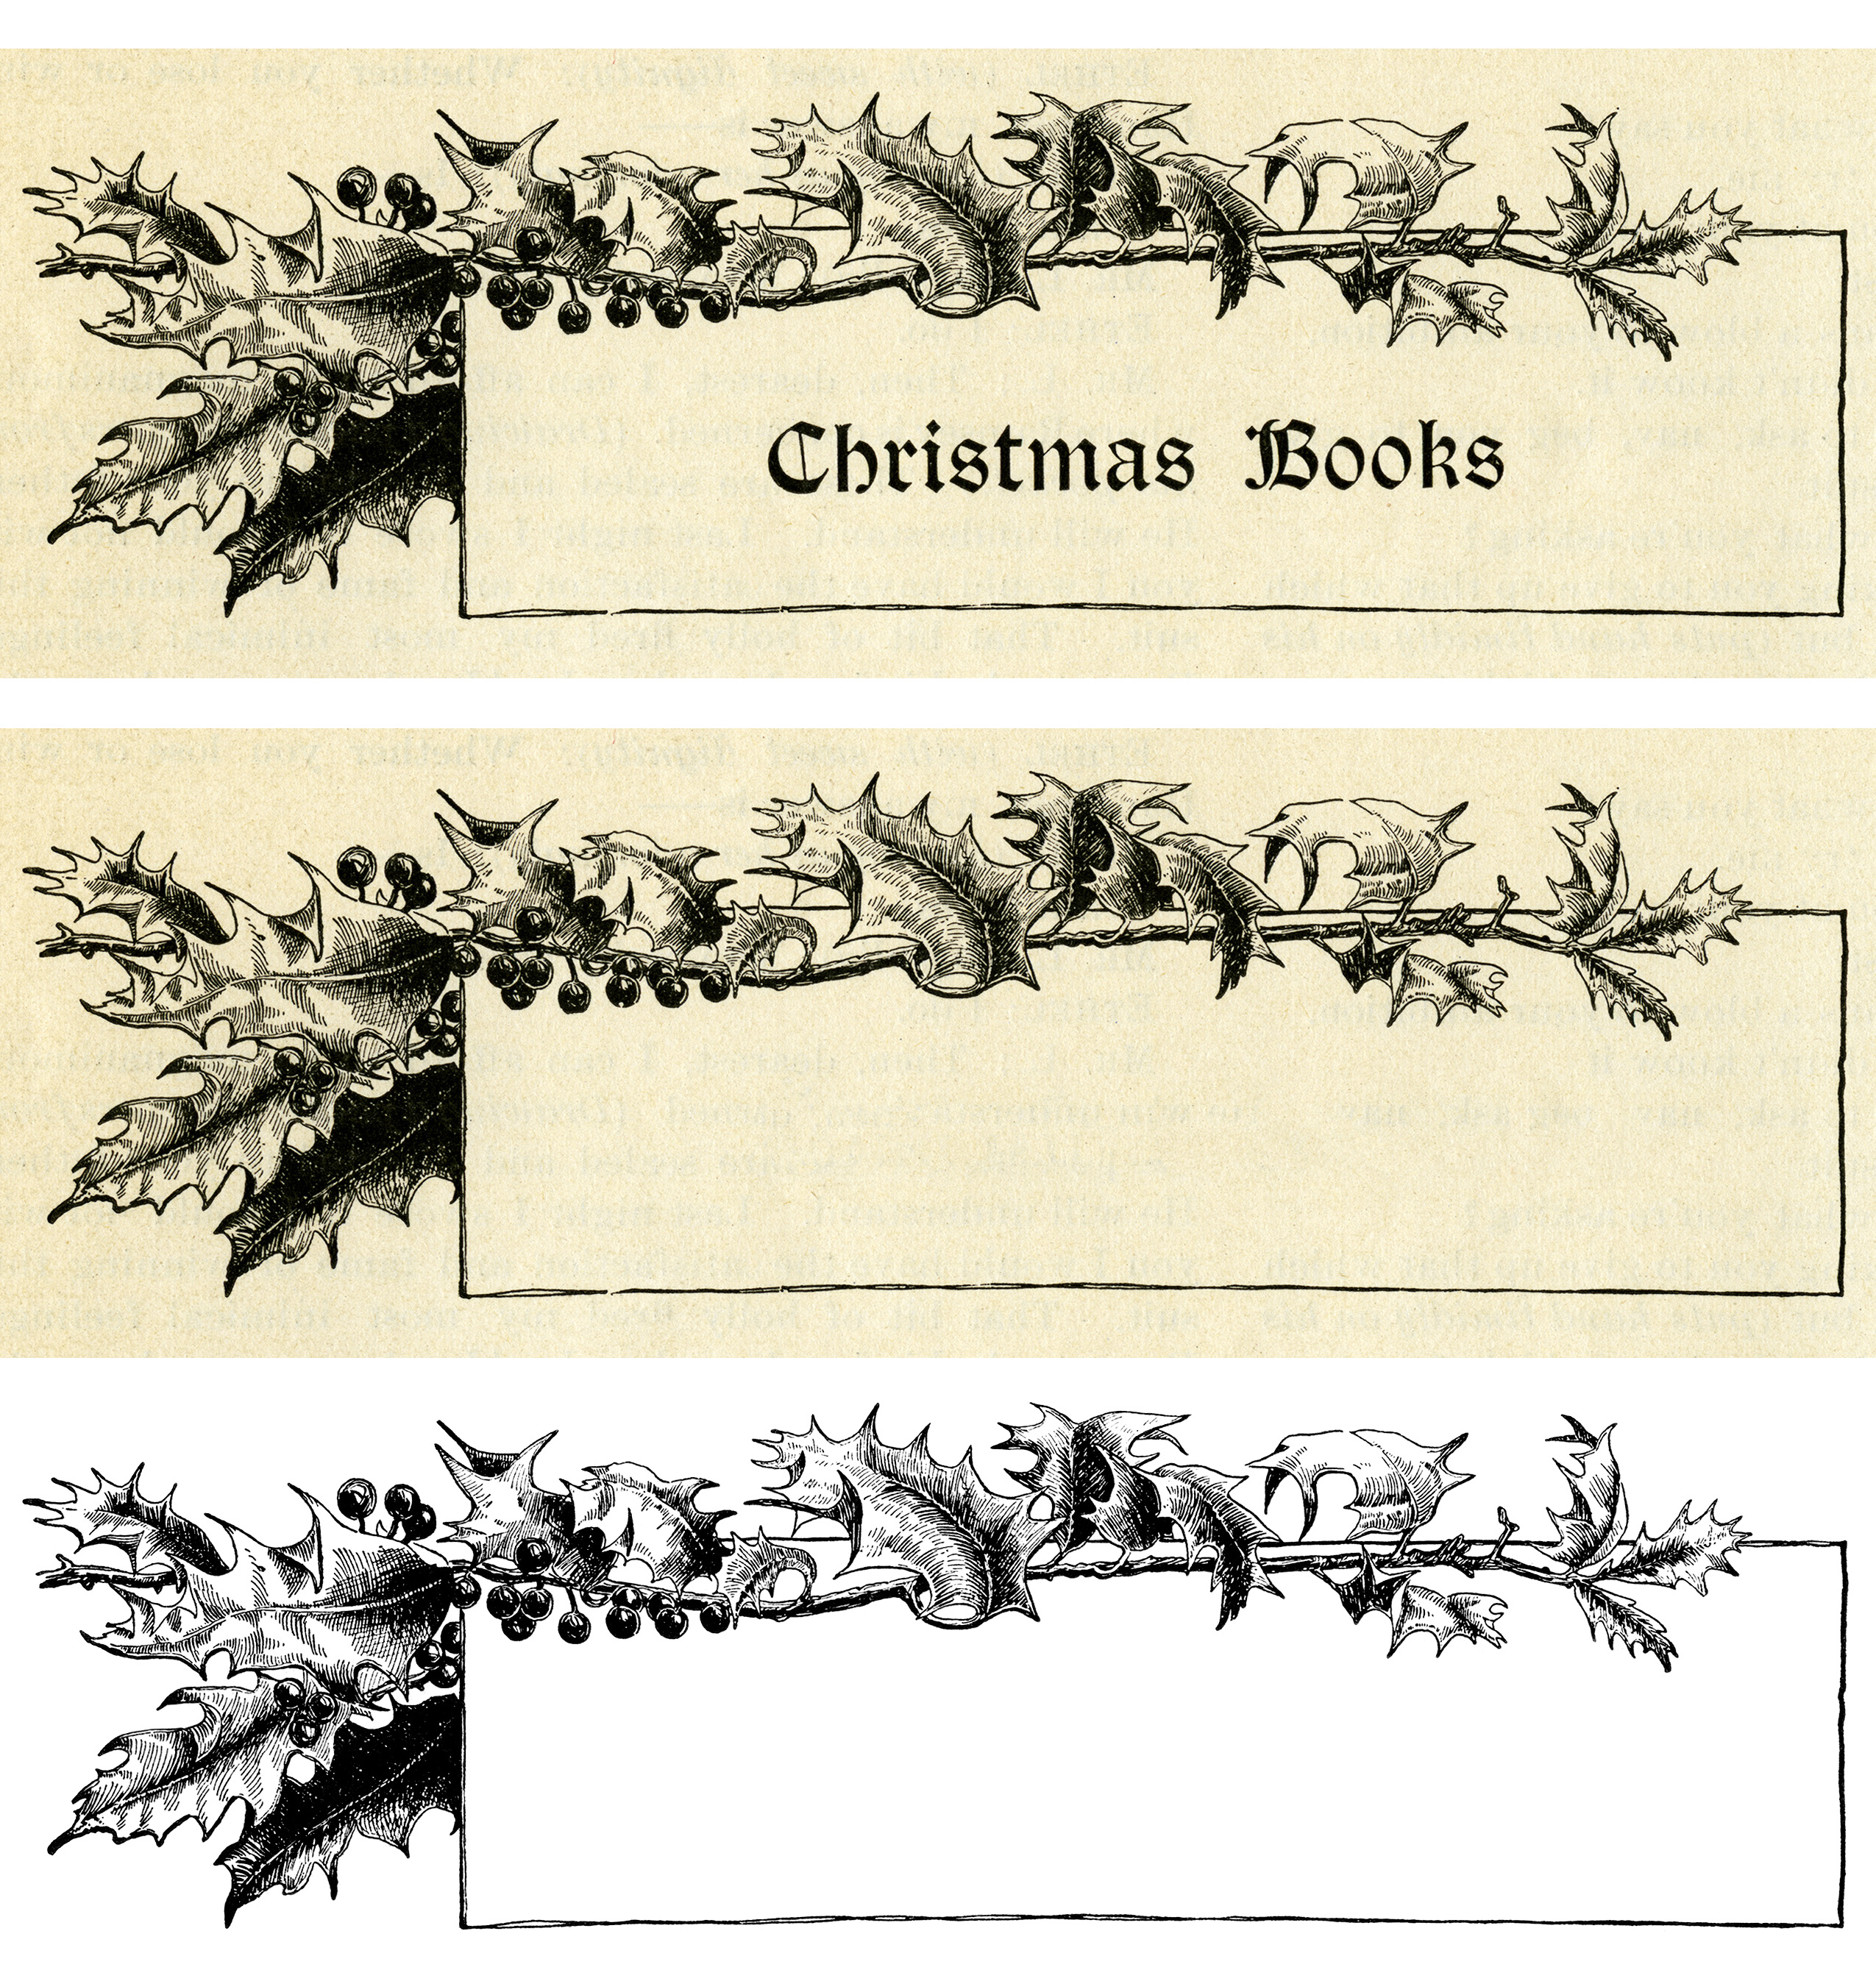 Holly and Berries Frame ~ Free Vintage Image